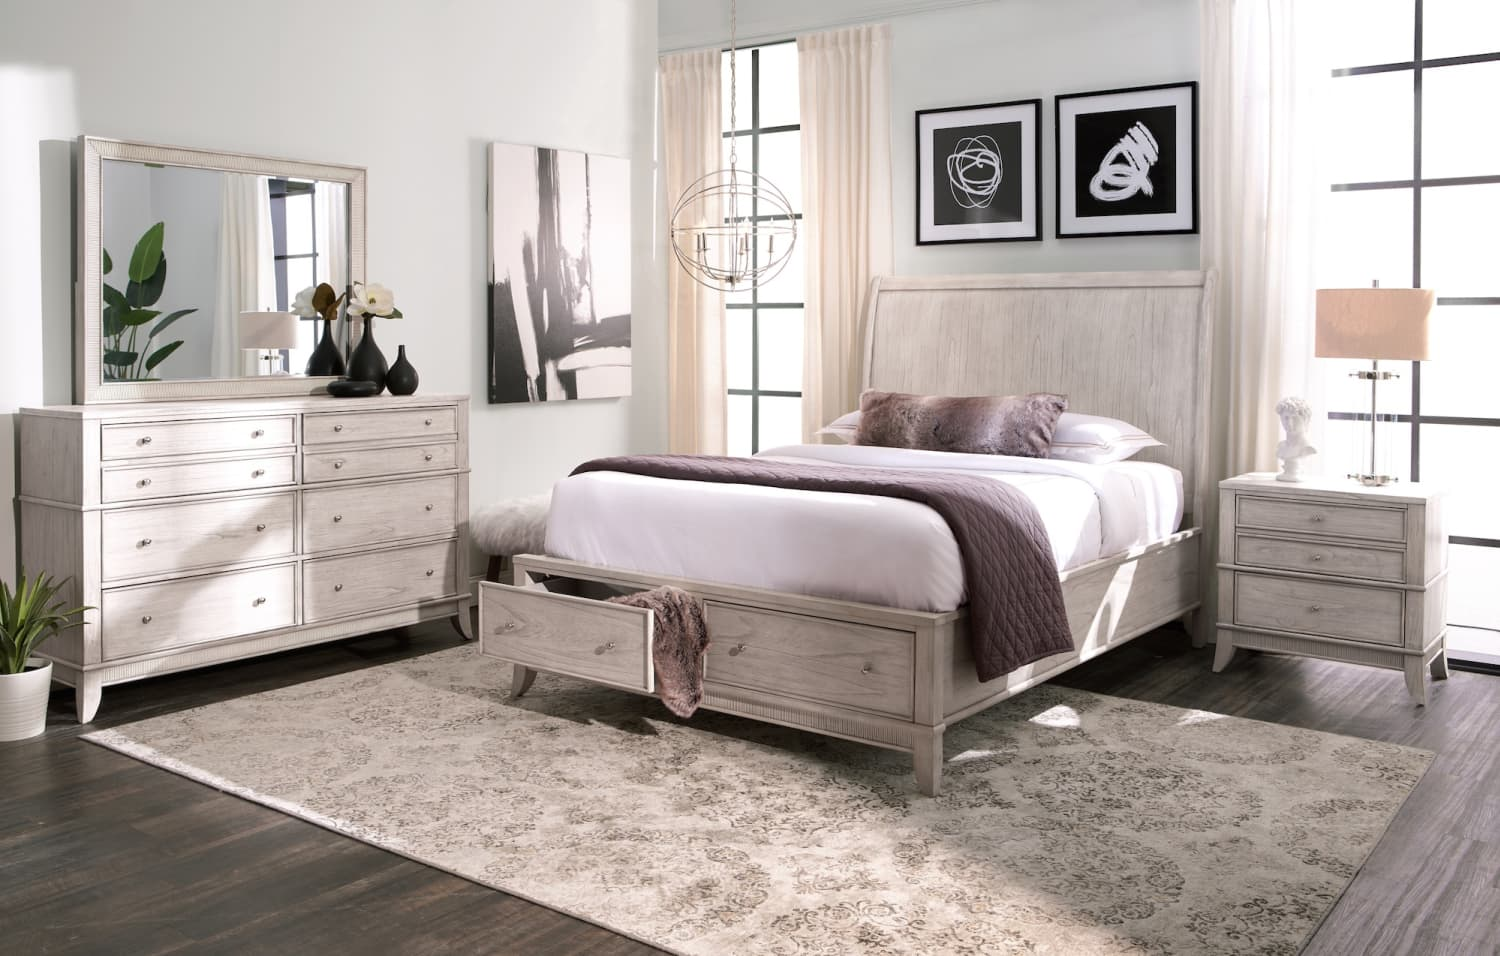 4 Beds That Solve Any Rental Bedroom Problem